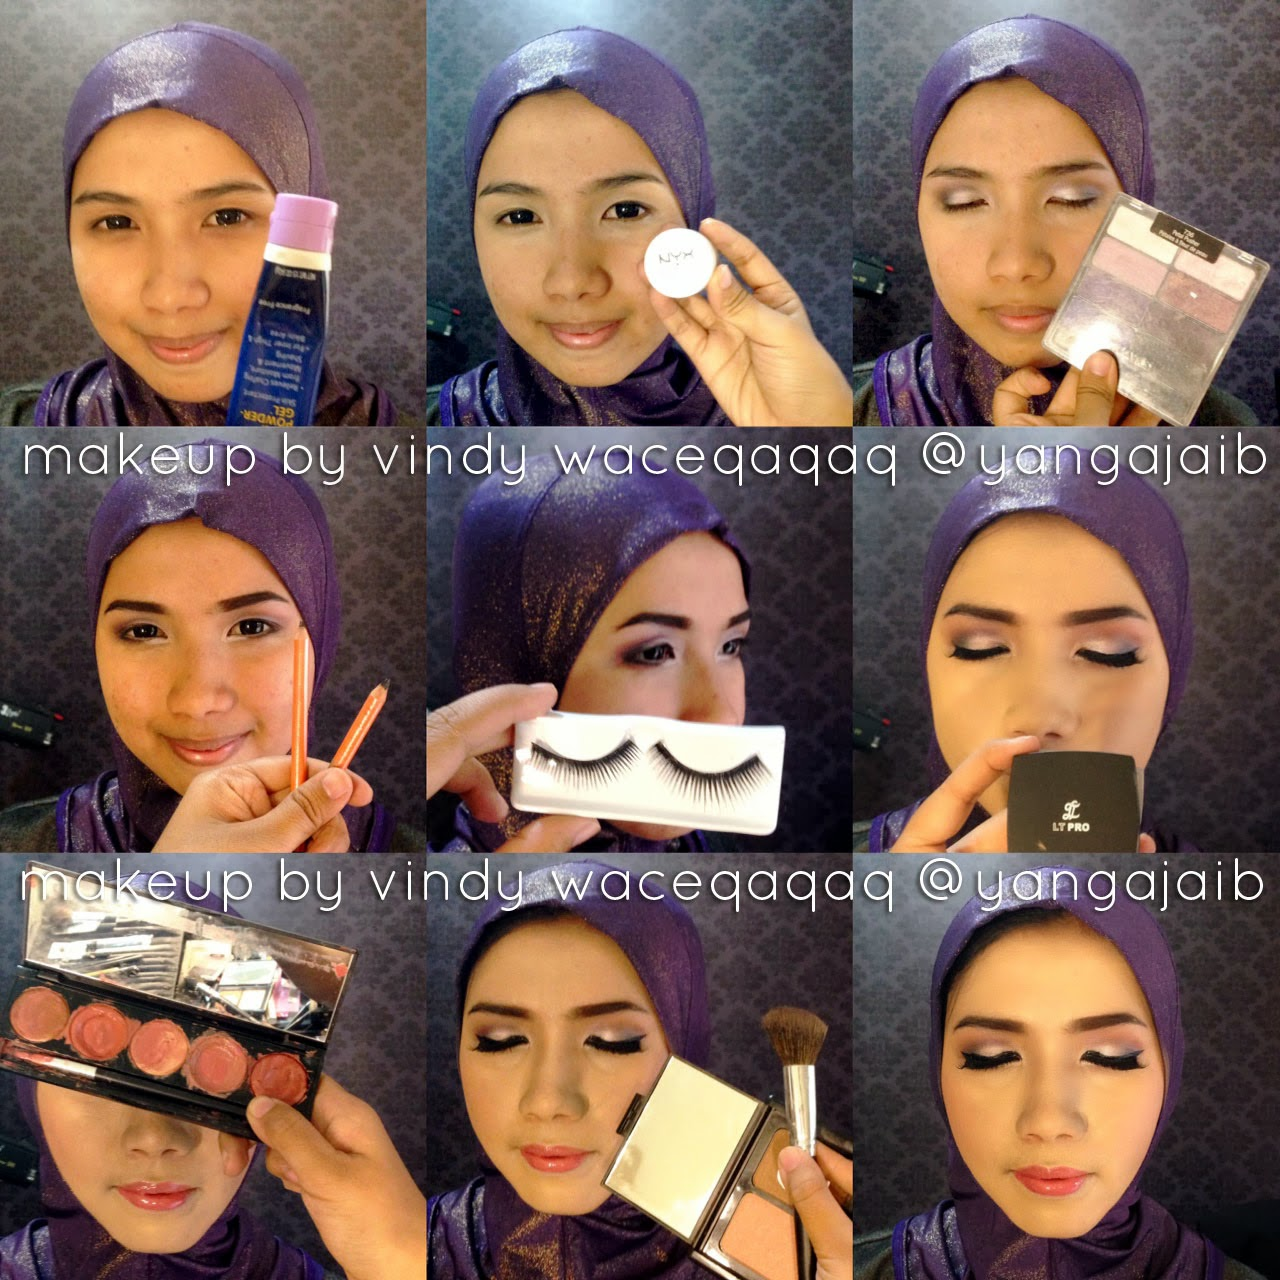 Ini Vindy Yang Ajaib Step By Step Aka Tutorial Hijab Dan Make Up